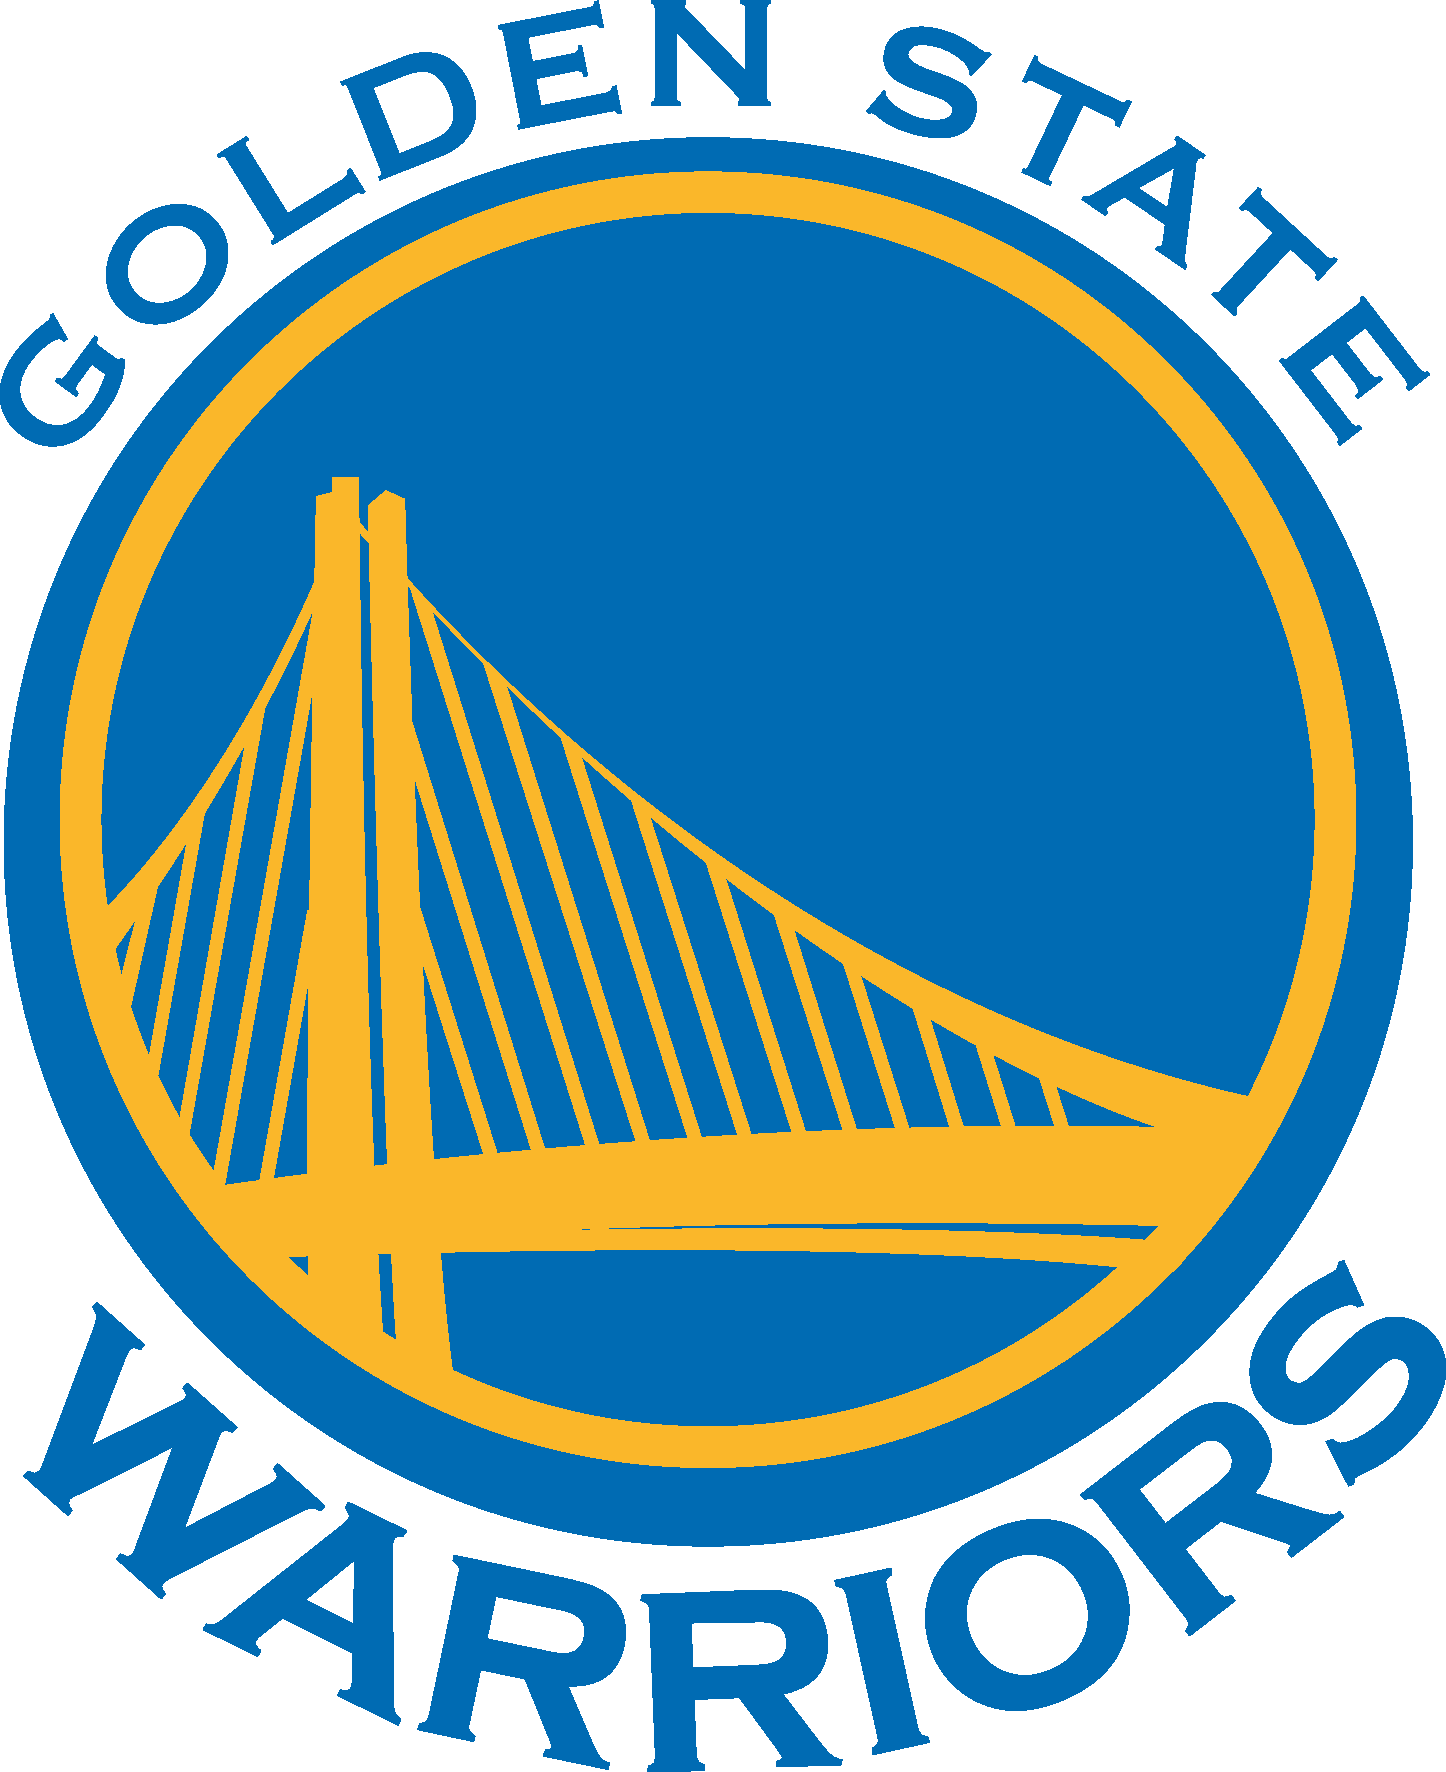 Golden state warriors clipart logo freeuse library Warriors Logo [Golden State Warriors] Vector Icon Template Clipart ... freeuse library